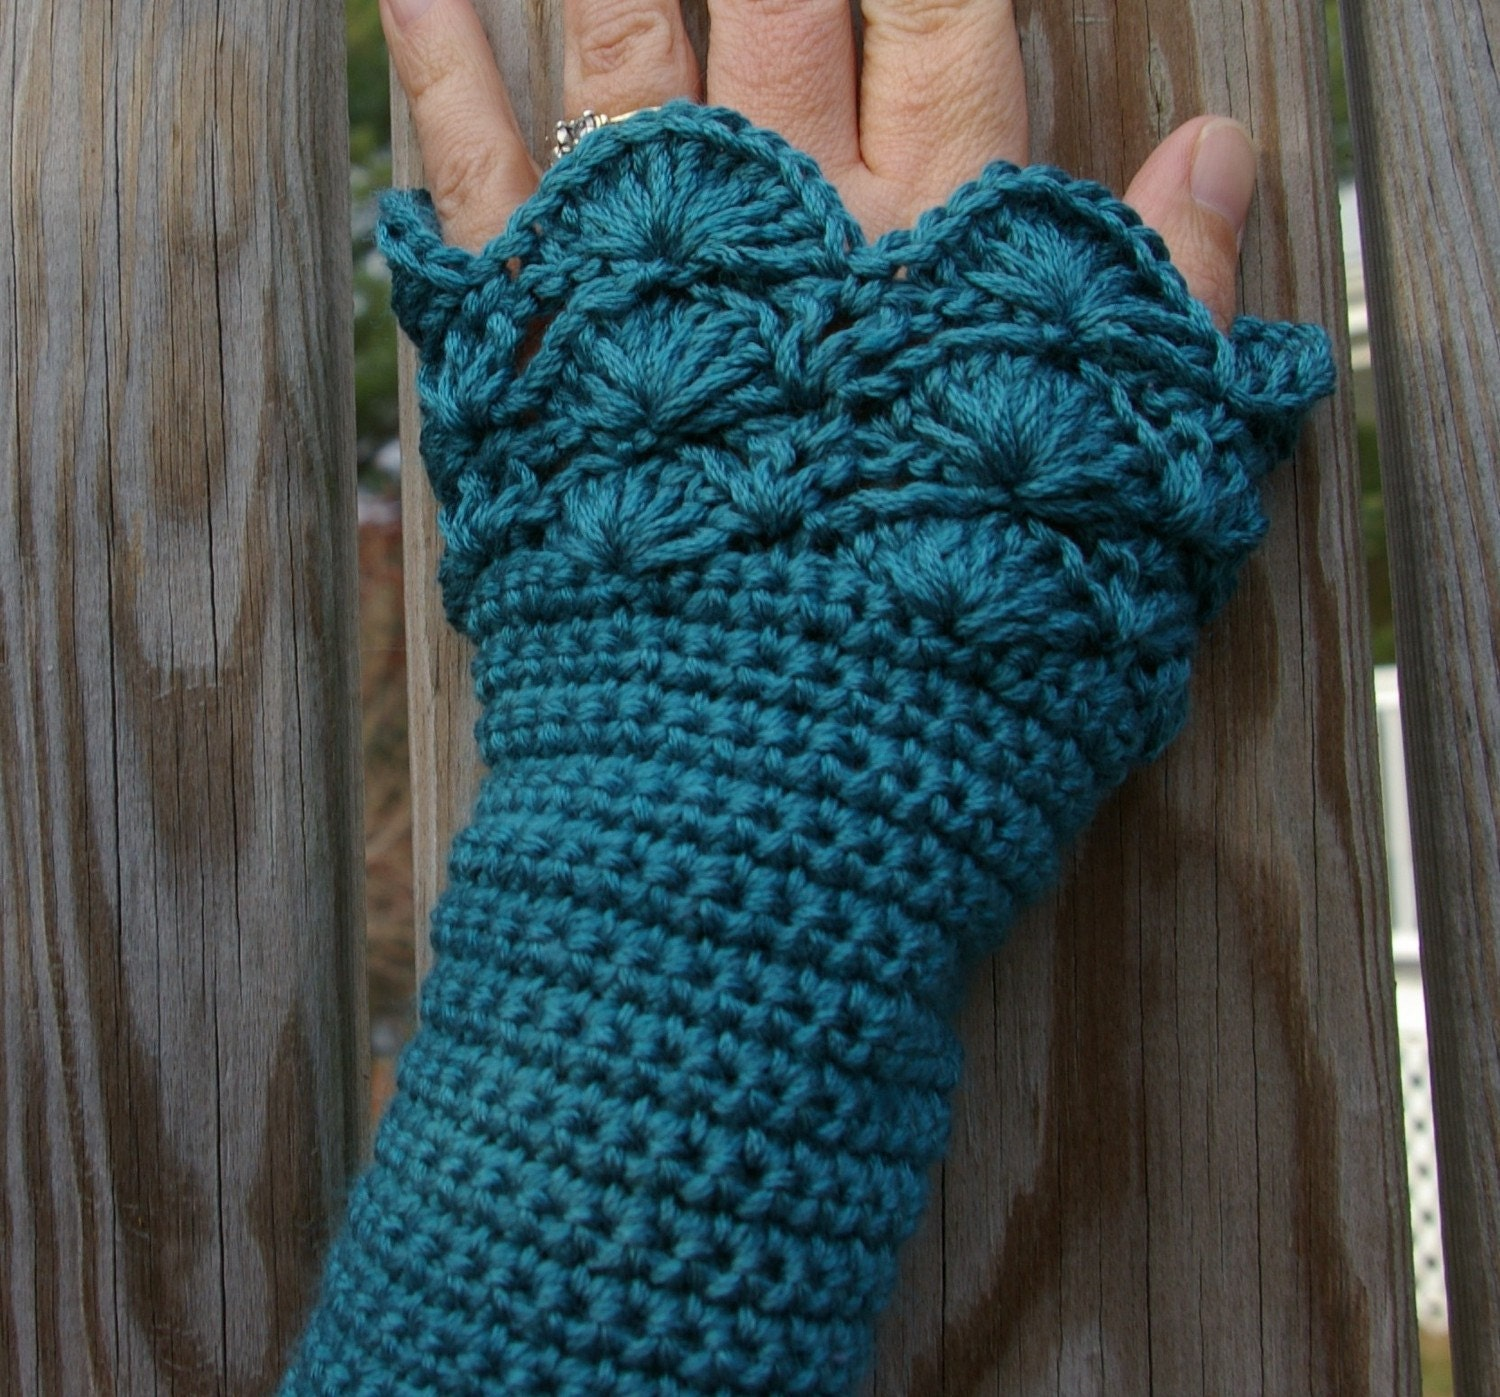 Crochet Patterns Arm Warmers : Crochet Arm Warmers Fingerless Gloves in Teal by CandacesCloset